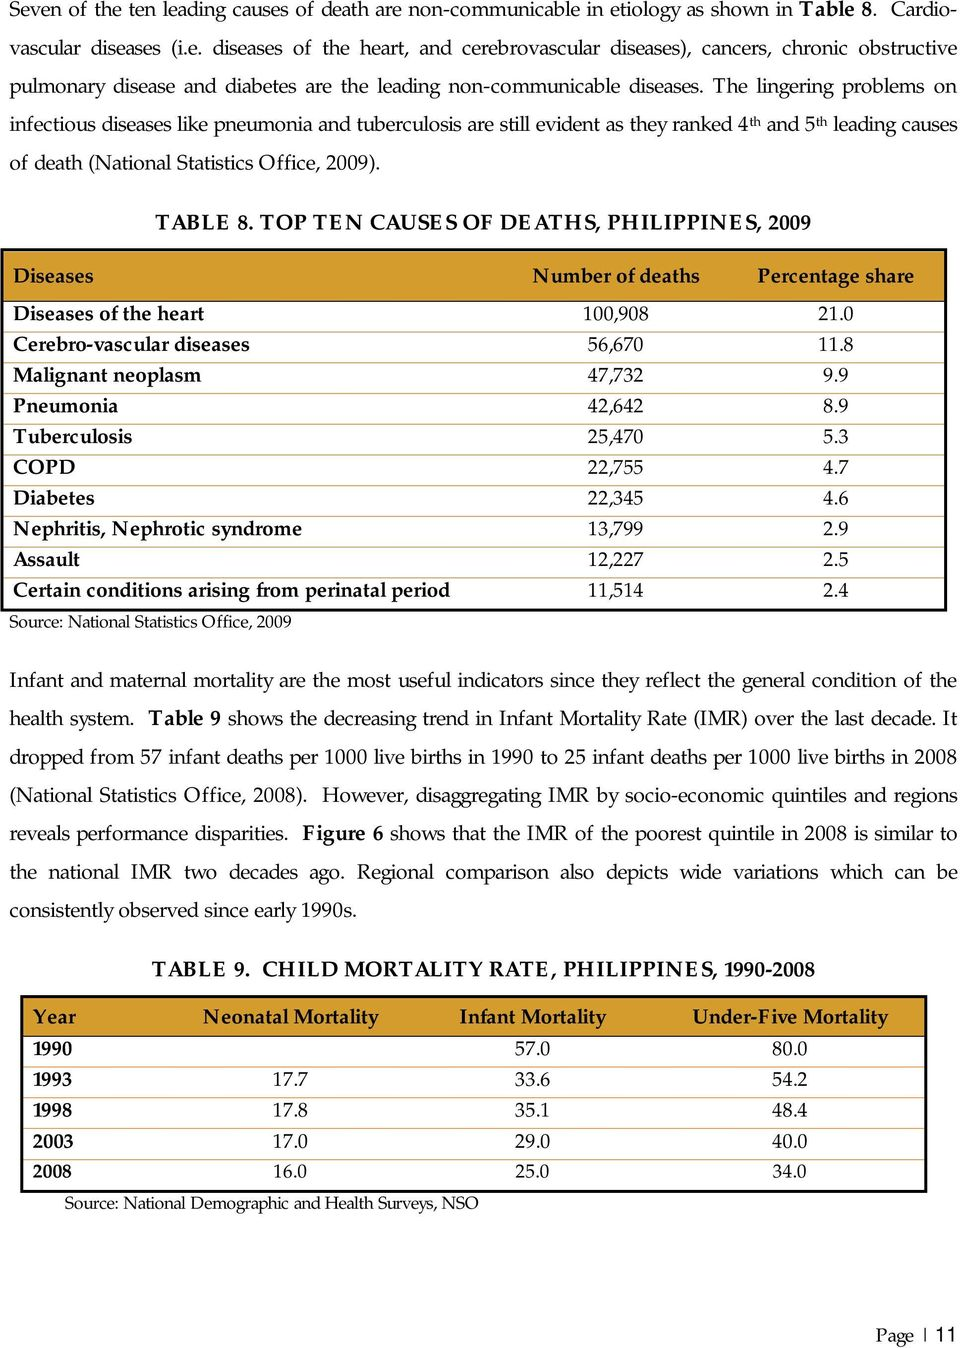 TOP TEN CAUSES OF DEATHS, PHILIPPINES, 2009 Diseases Number of deaths Percentage share Diseases of the heart 100,908 21.0 Cerebro-vascular diseases 56,670 11.8 Malignant neoplasm 47,732 9.